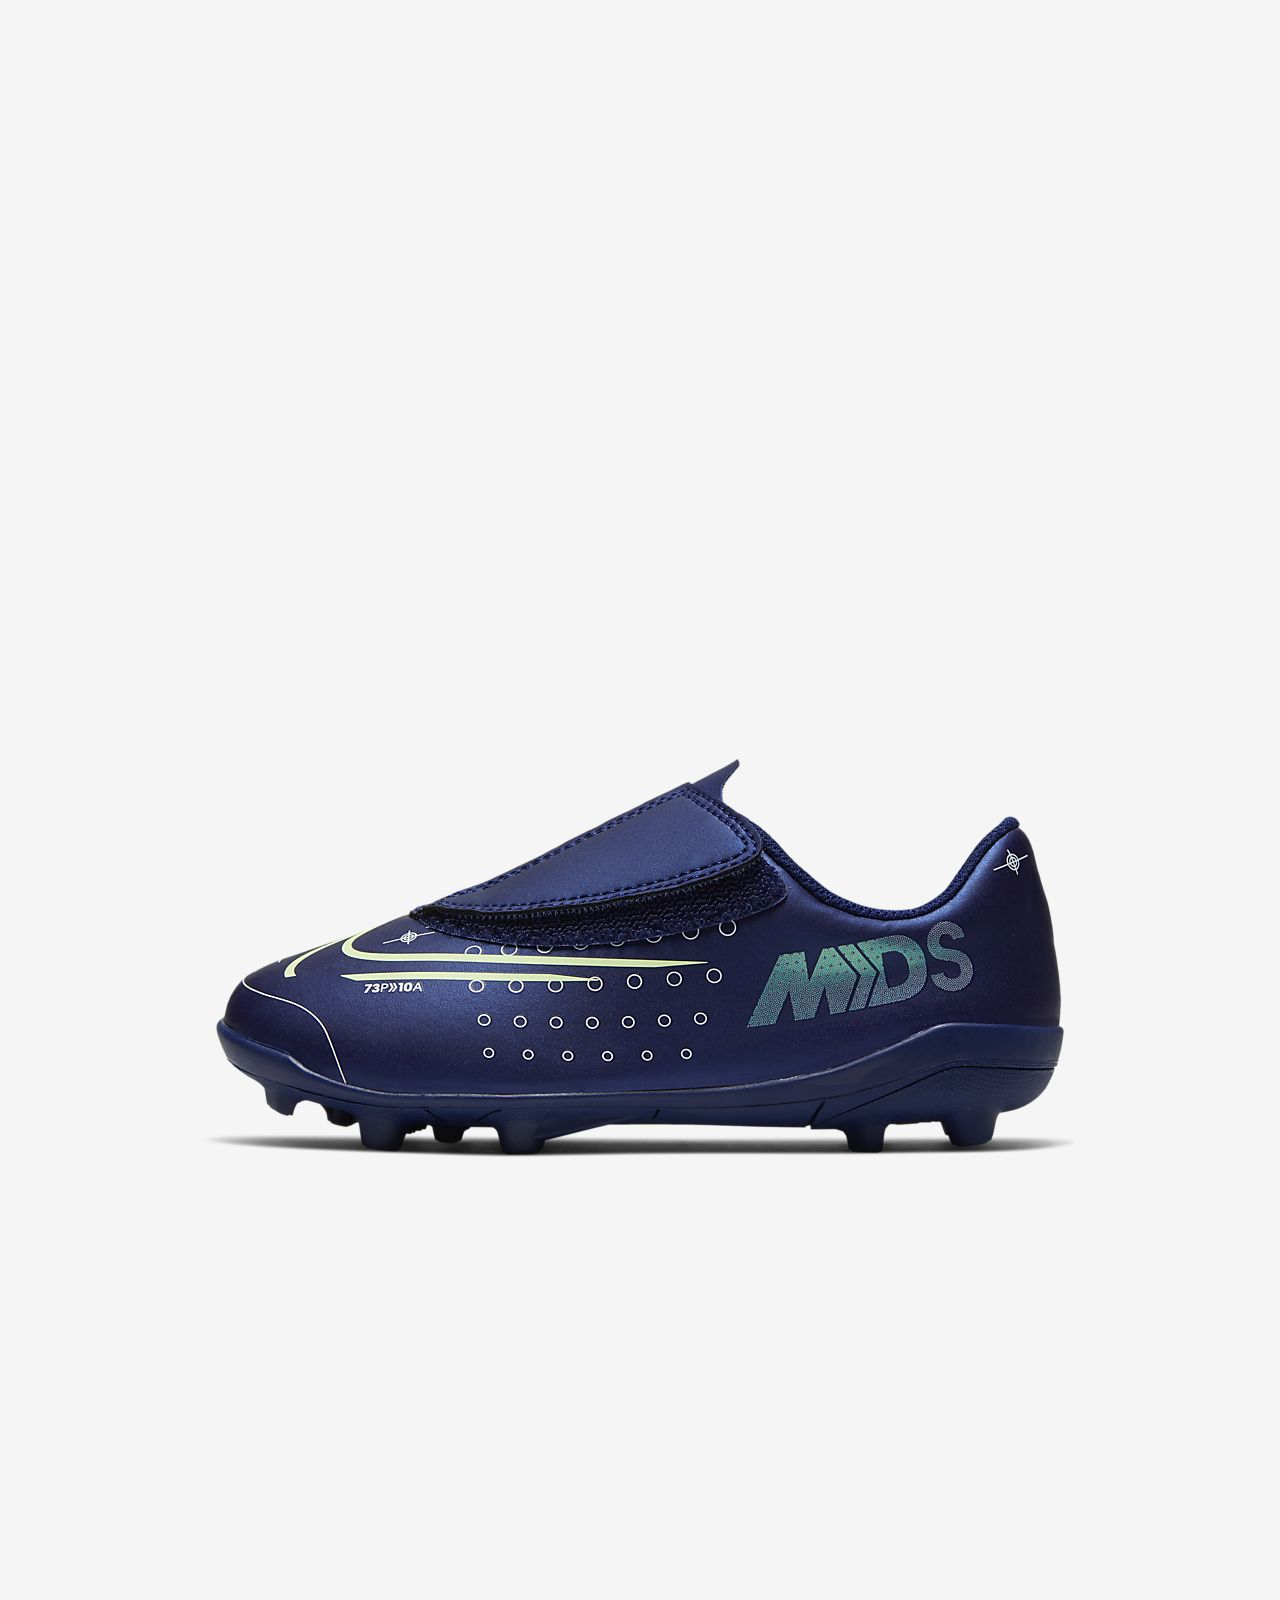 Nike Jr. Mercurial Vapor 13 Club MDS MG Younger Kids' Multi-Ground Football Boot